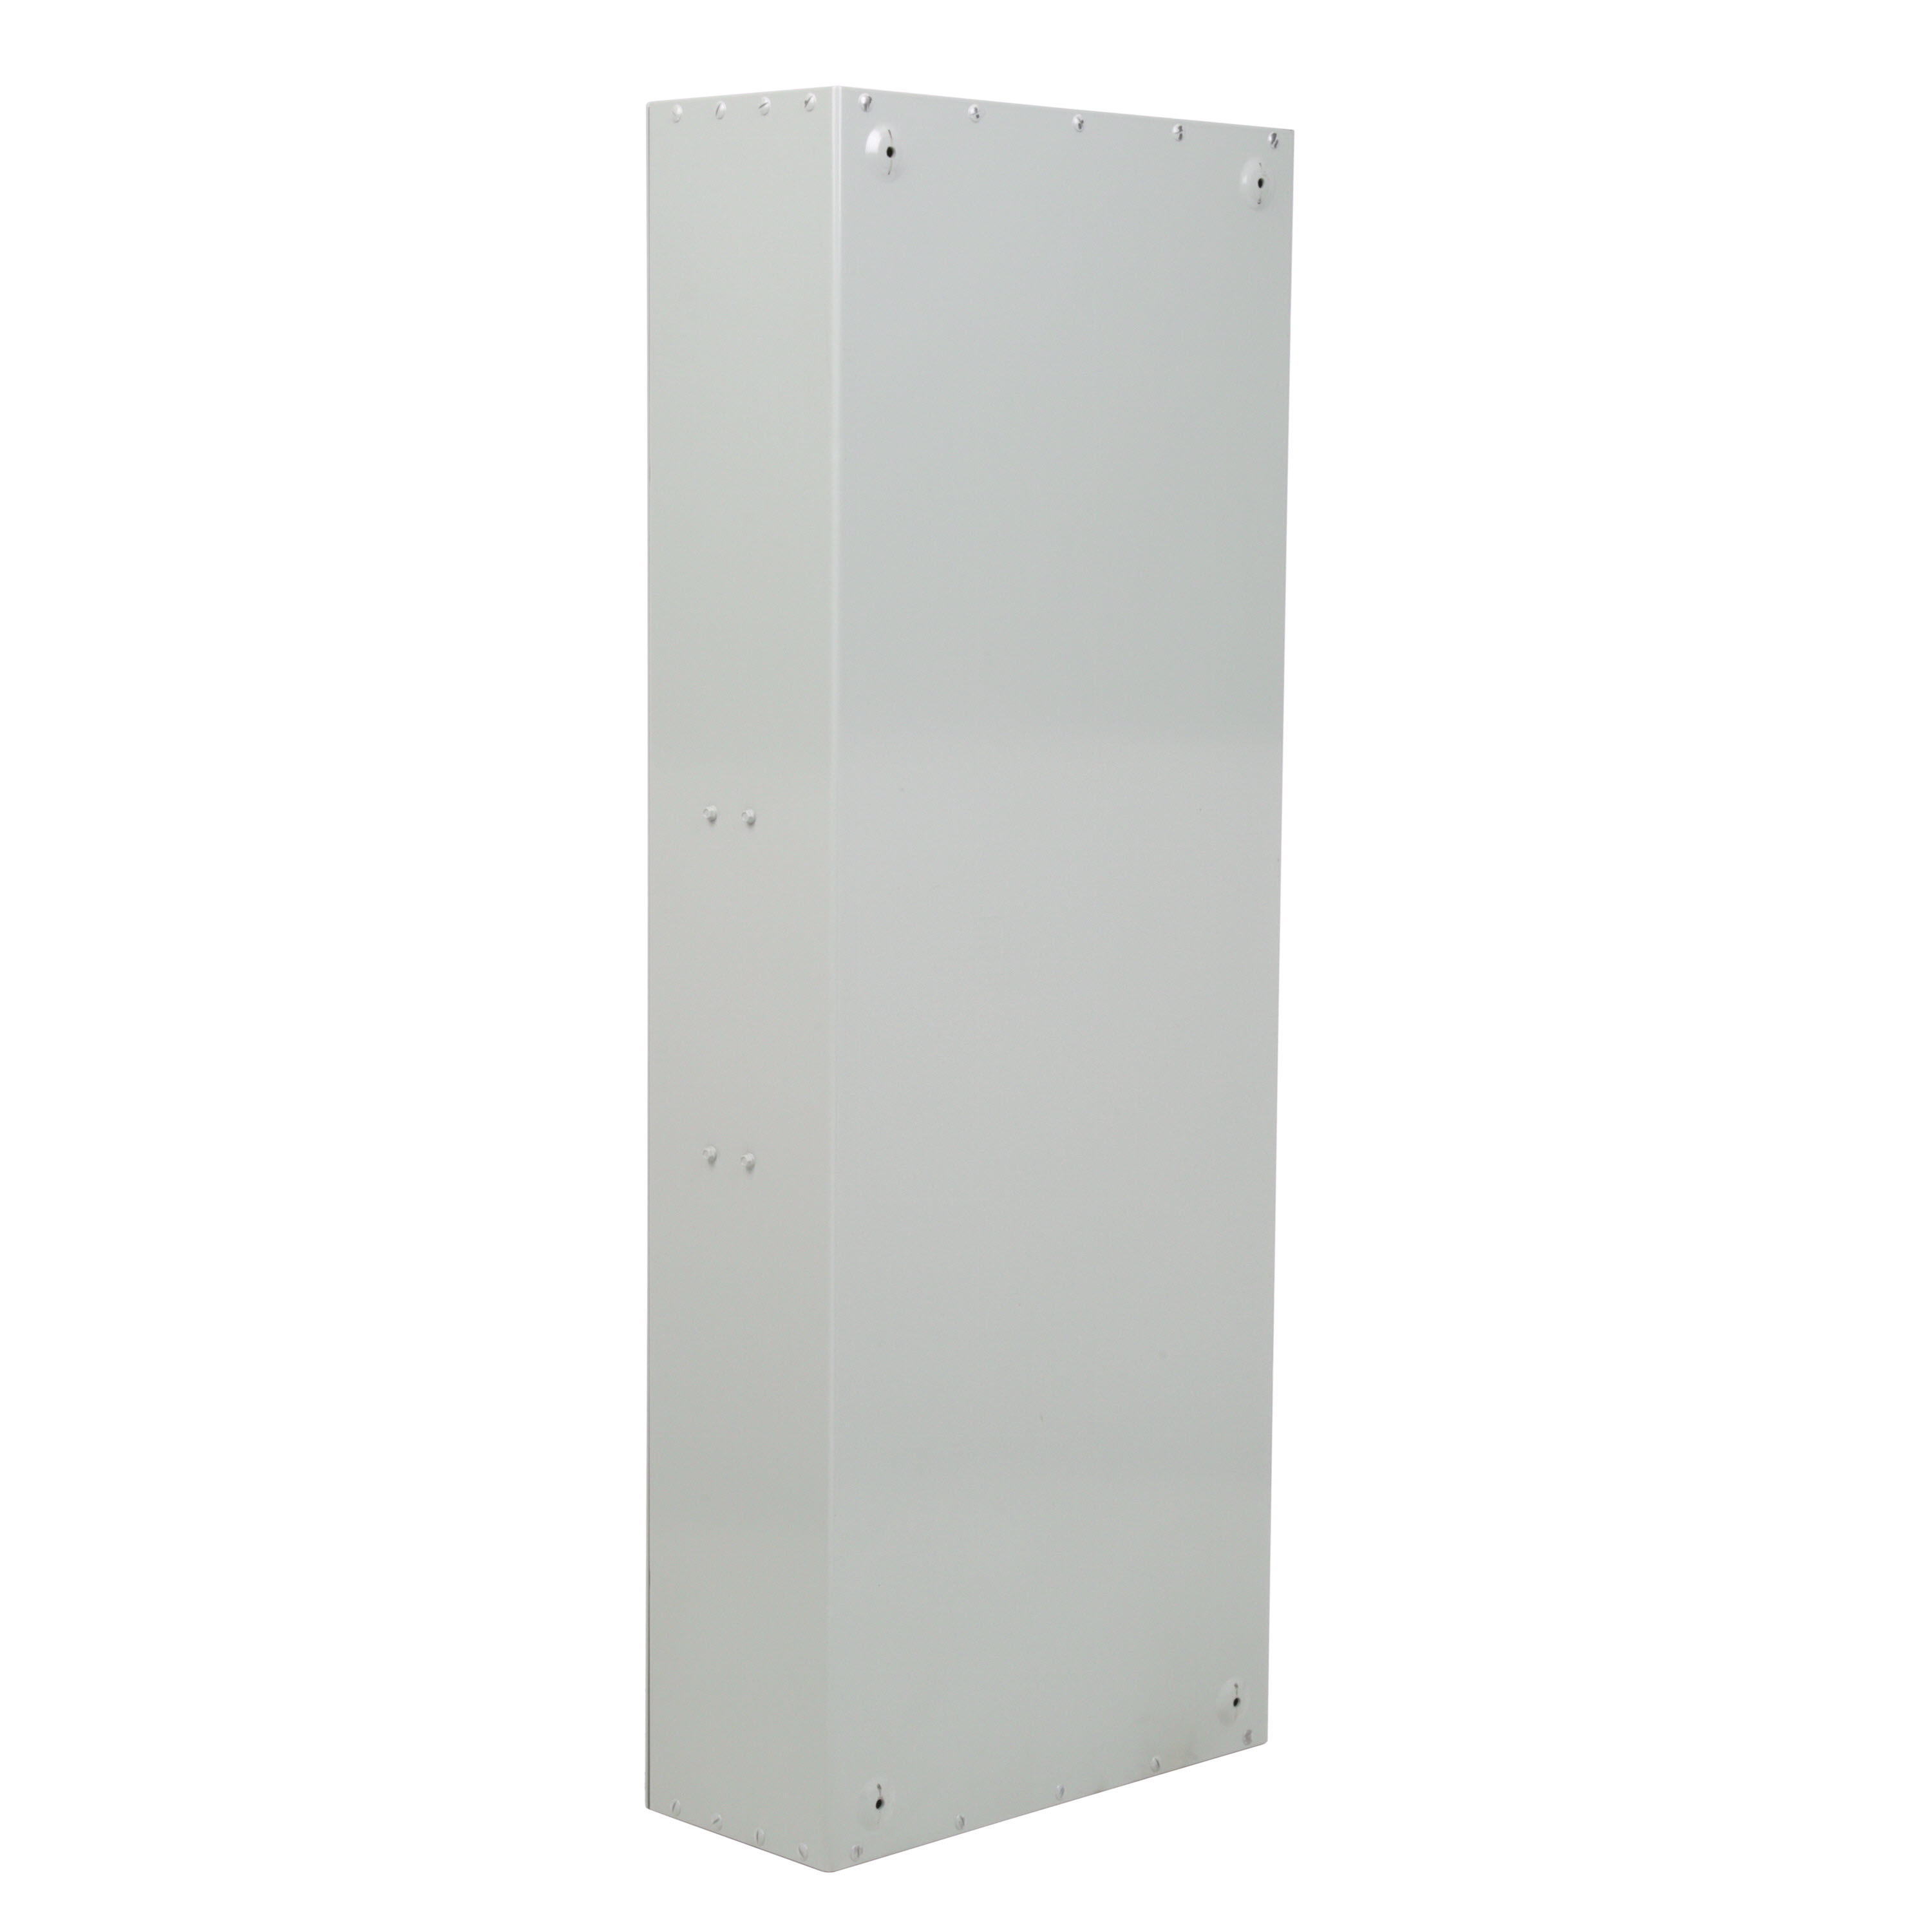 BREAKER MD/ND ENCLOSURE TYP 1